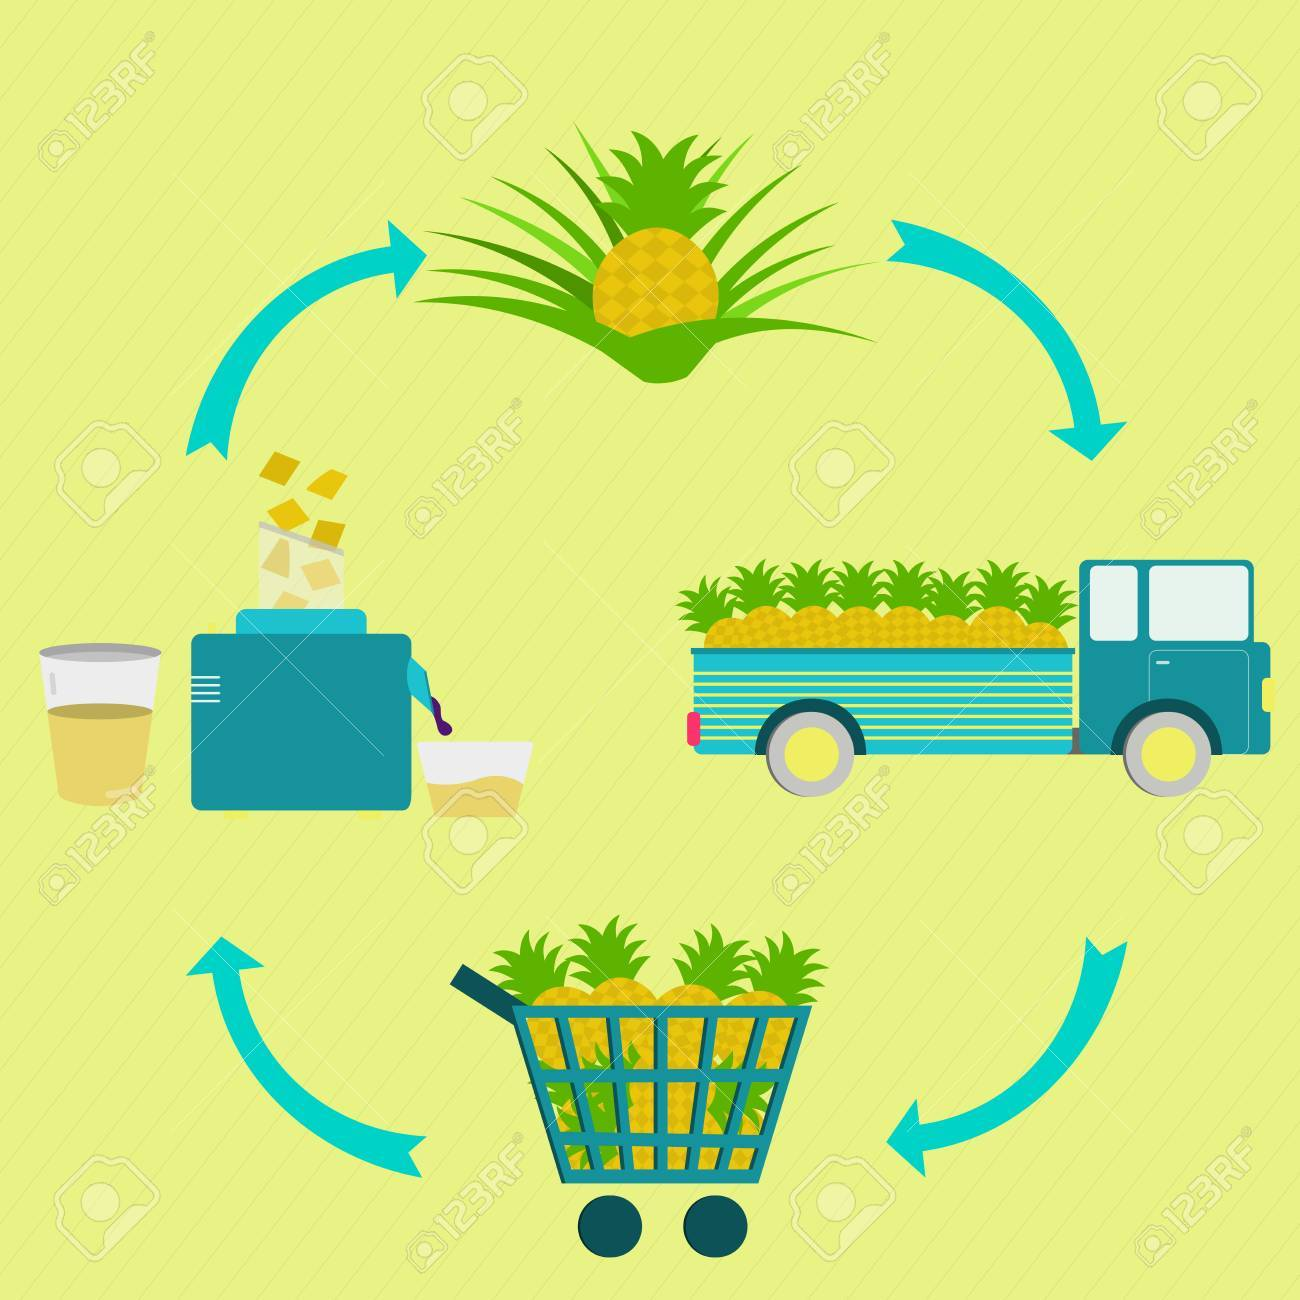 Process of pineapple juice. Pineapple juice production steps. Pineapple tree, harvest, transport, sale at the grocery store, production of pineapple juice at home. In a circular scheme. - 48371779